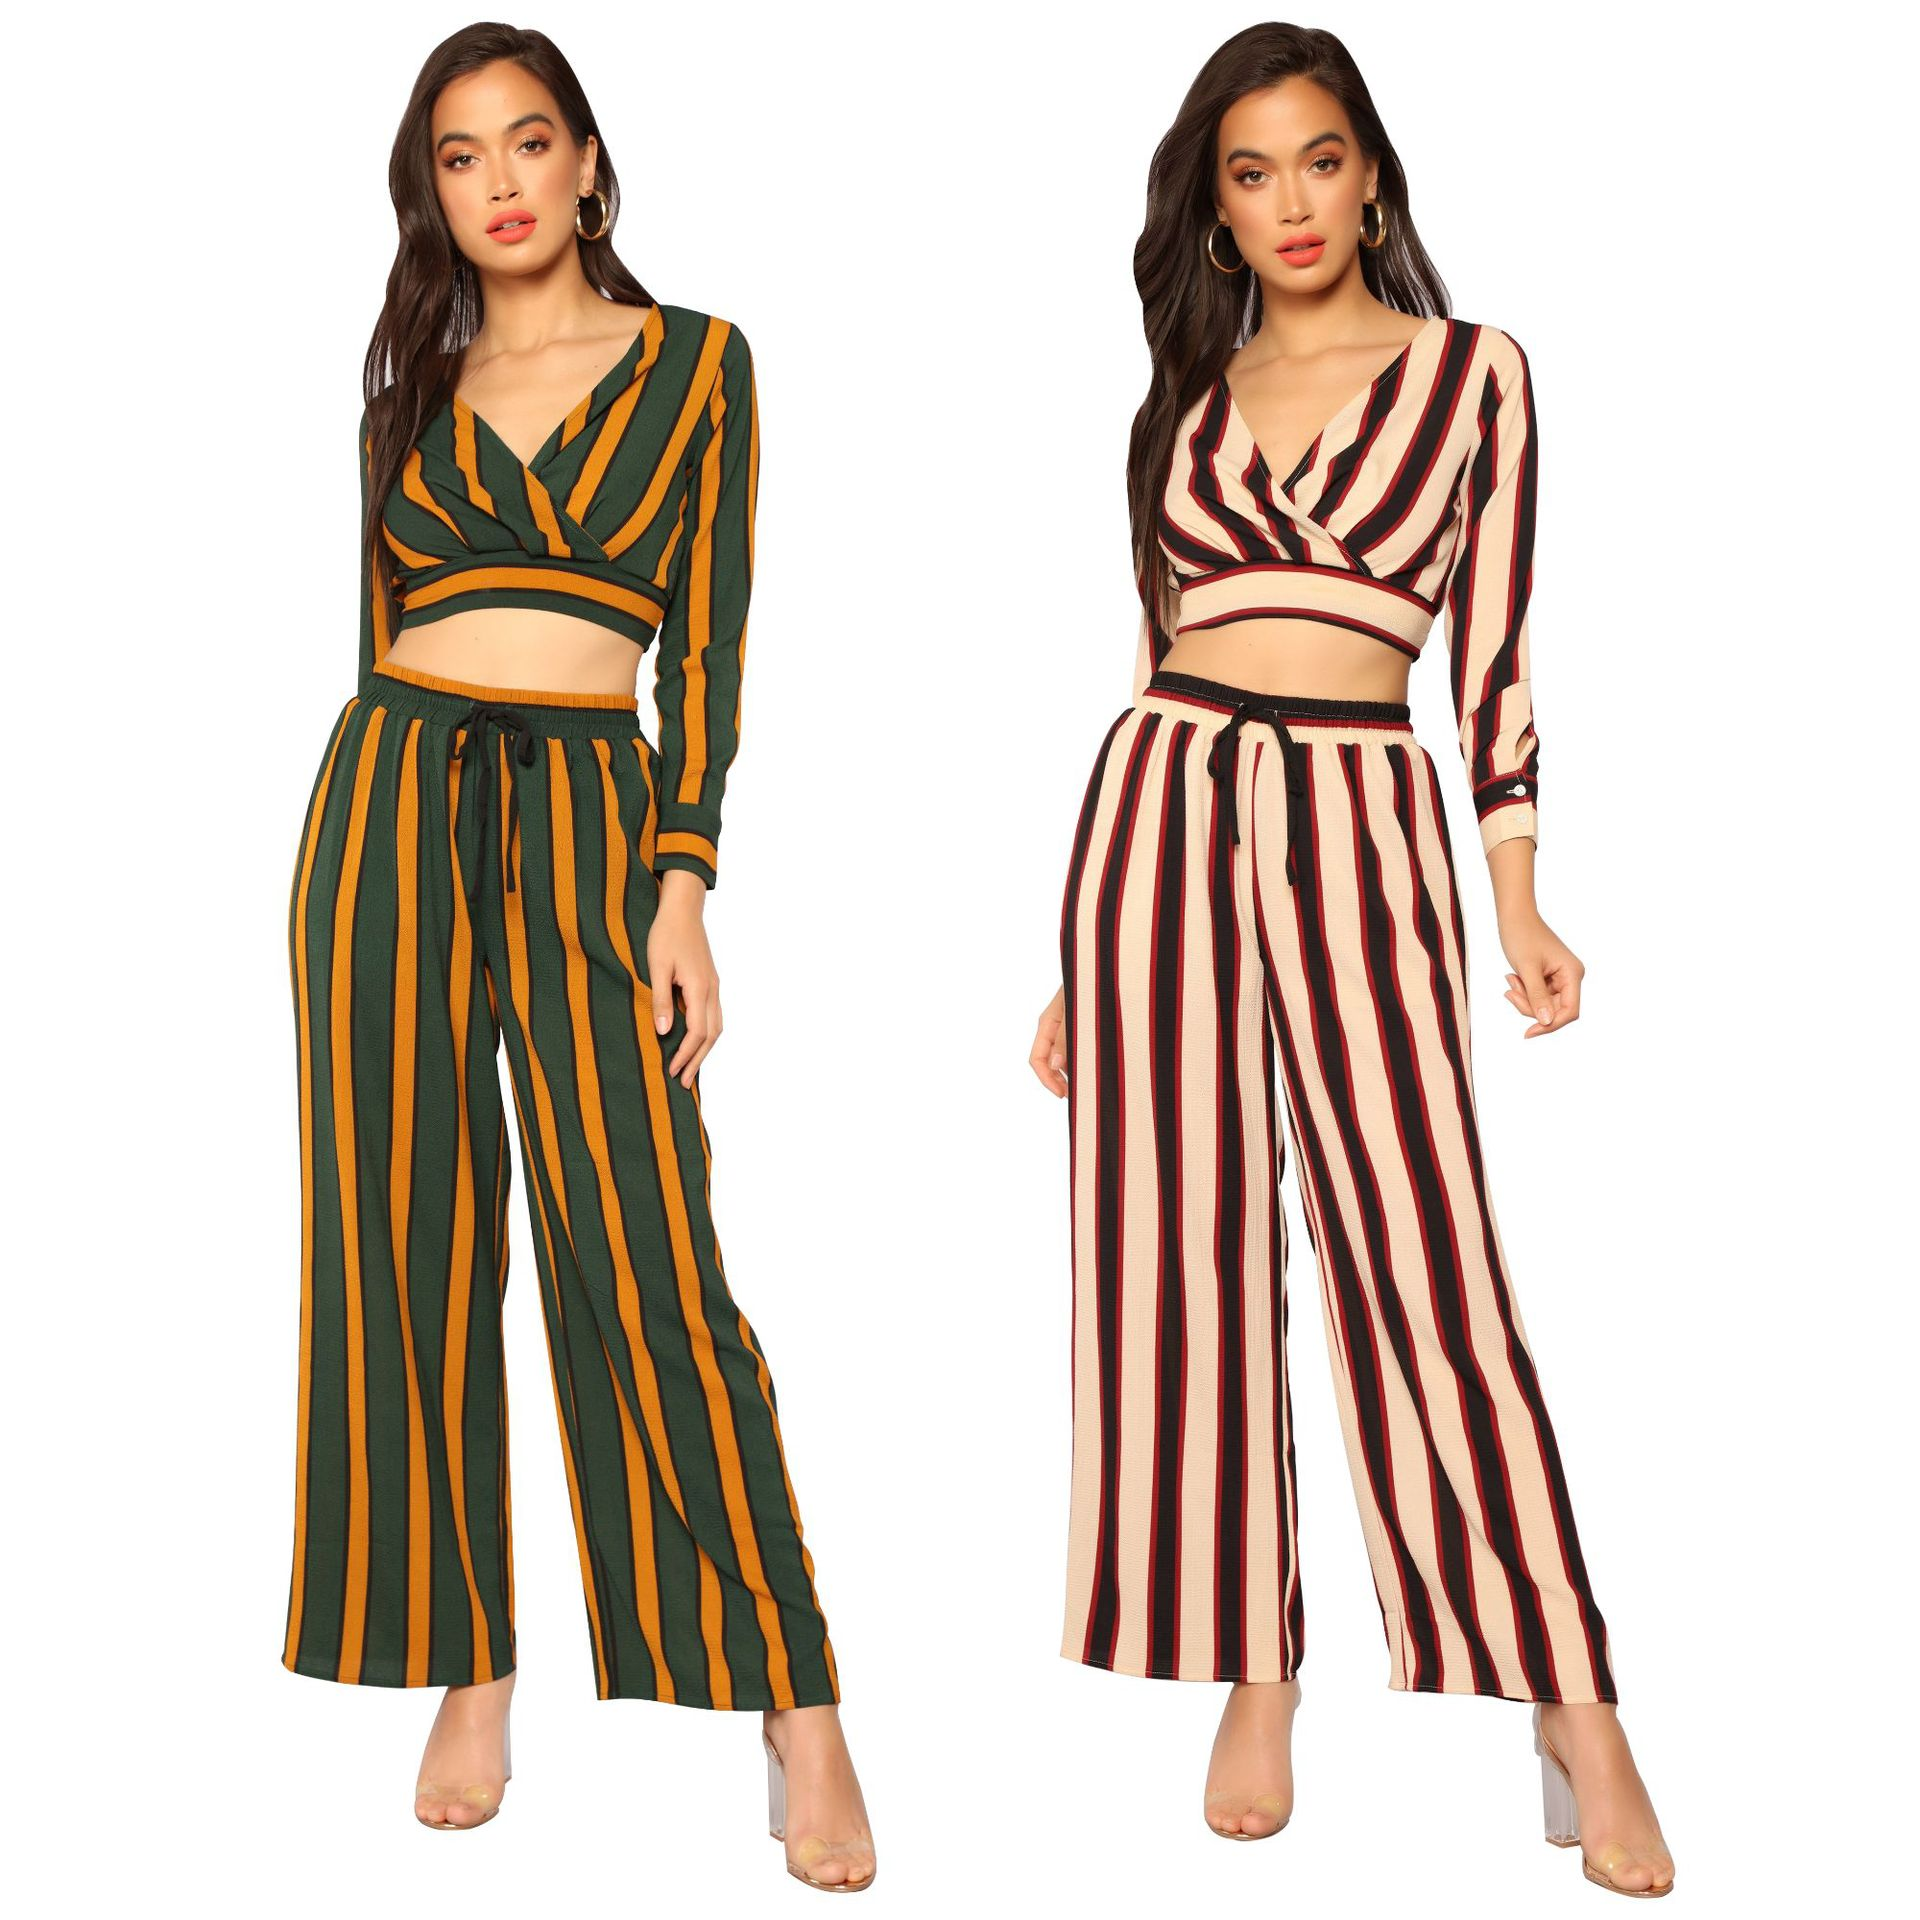 Wish Hot Selling Europe And America Fashion Women's Contrast Color Stripes V-neck Navel Tops Loose Pants Two-Piece Set